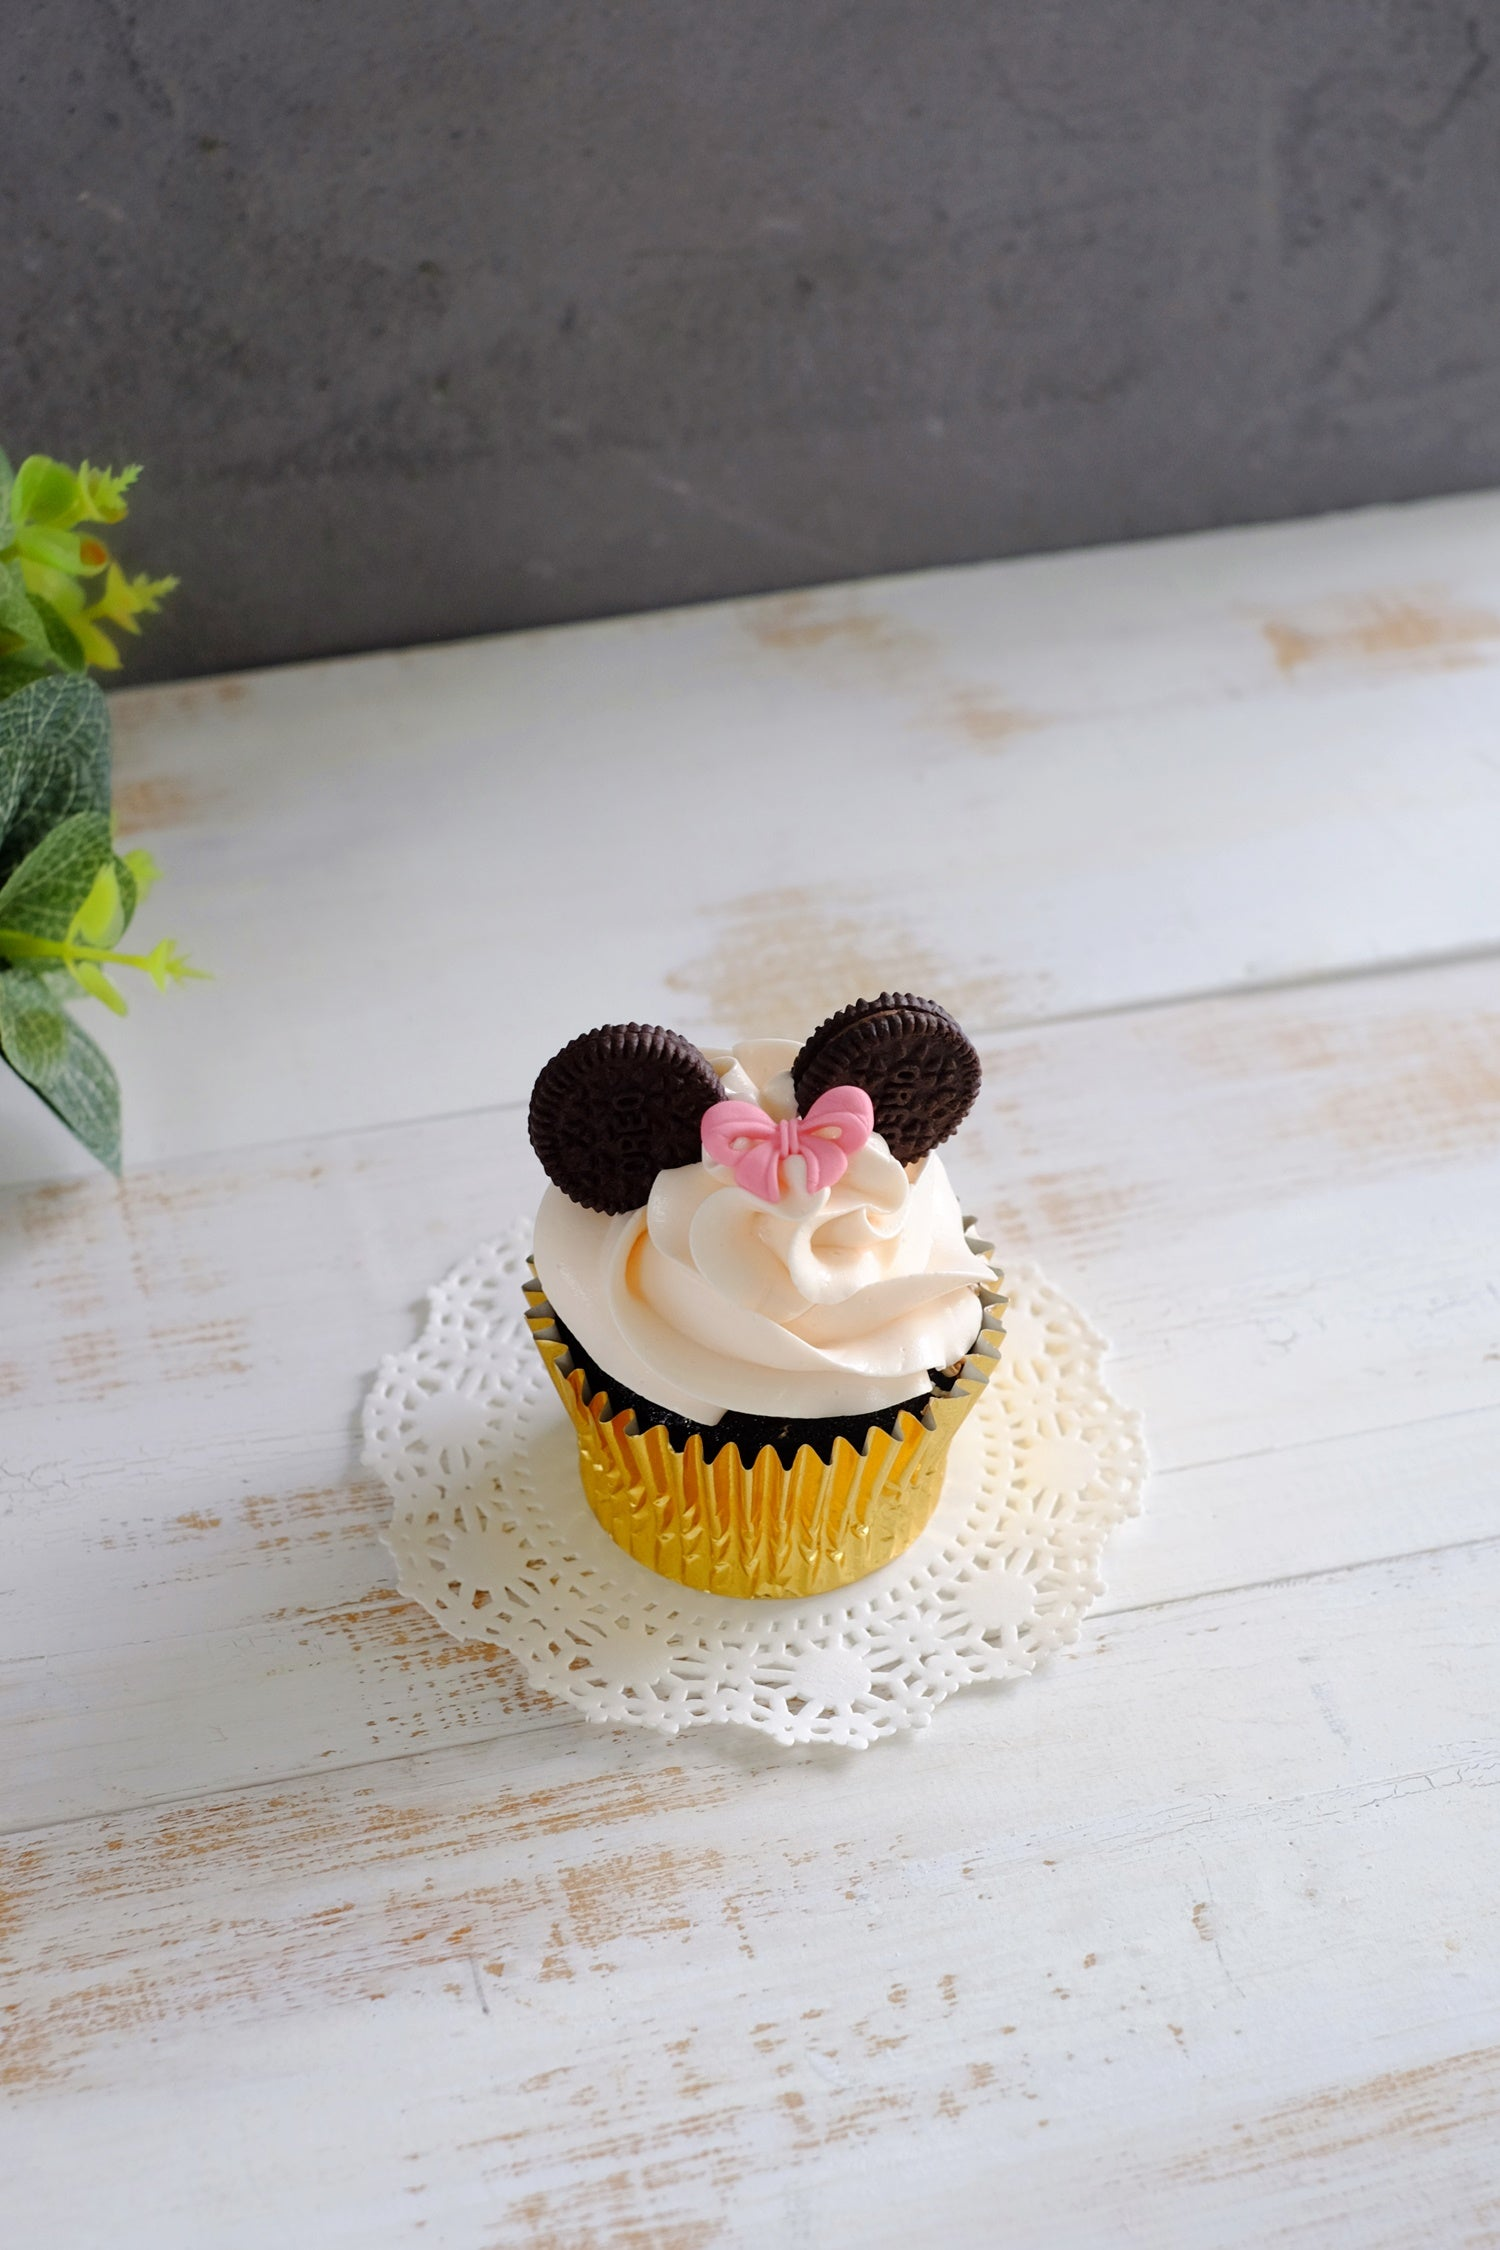 Minnie Cupcakes ($4.35/Pc)